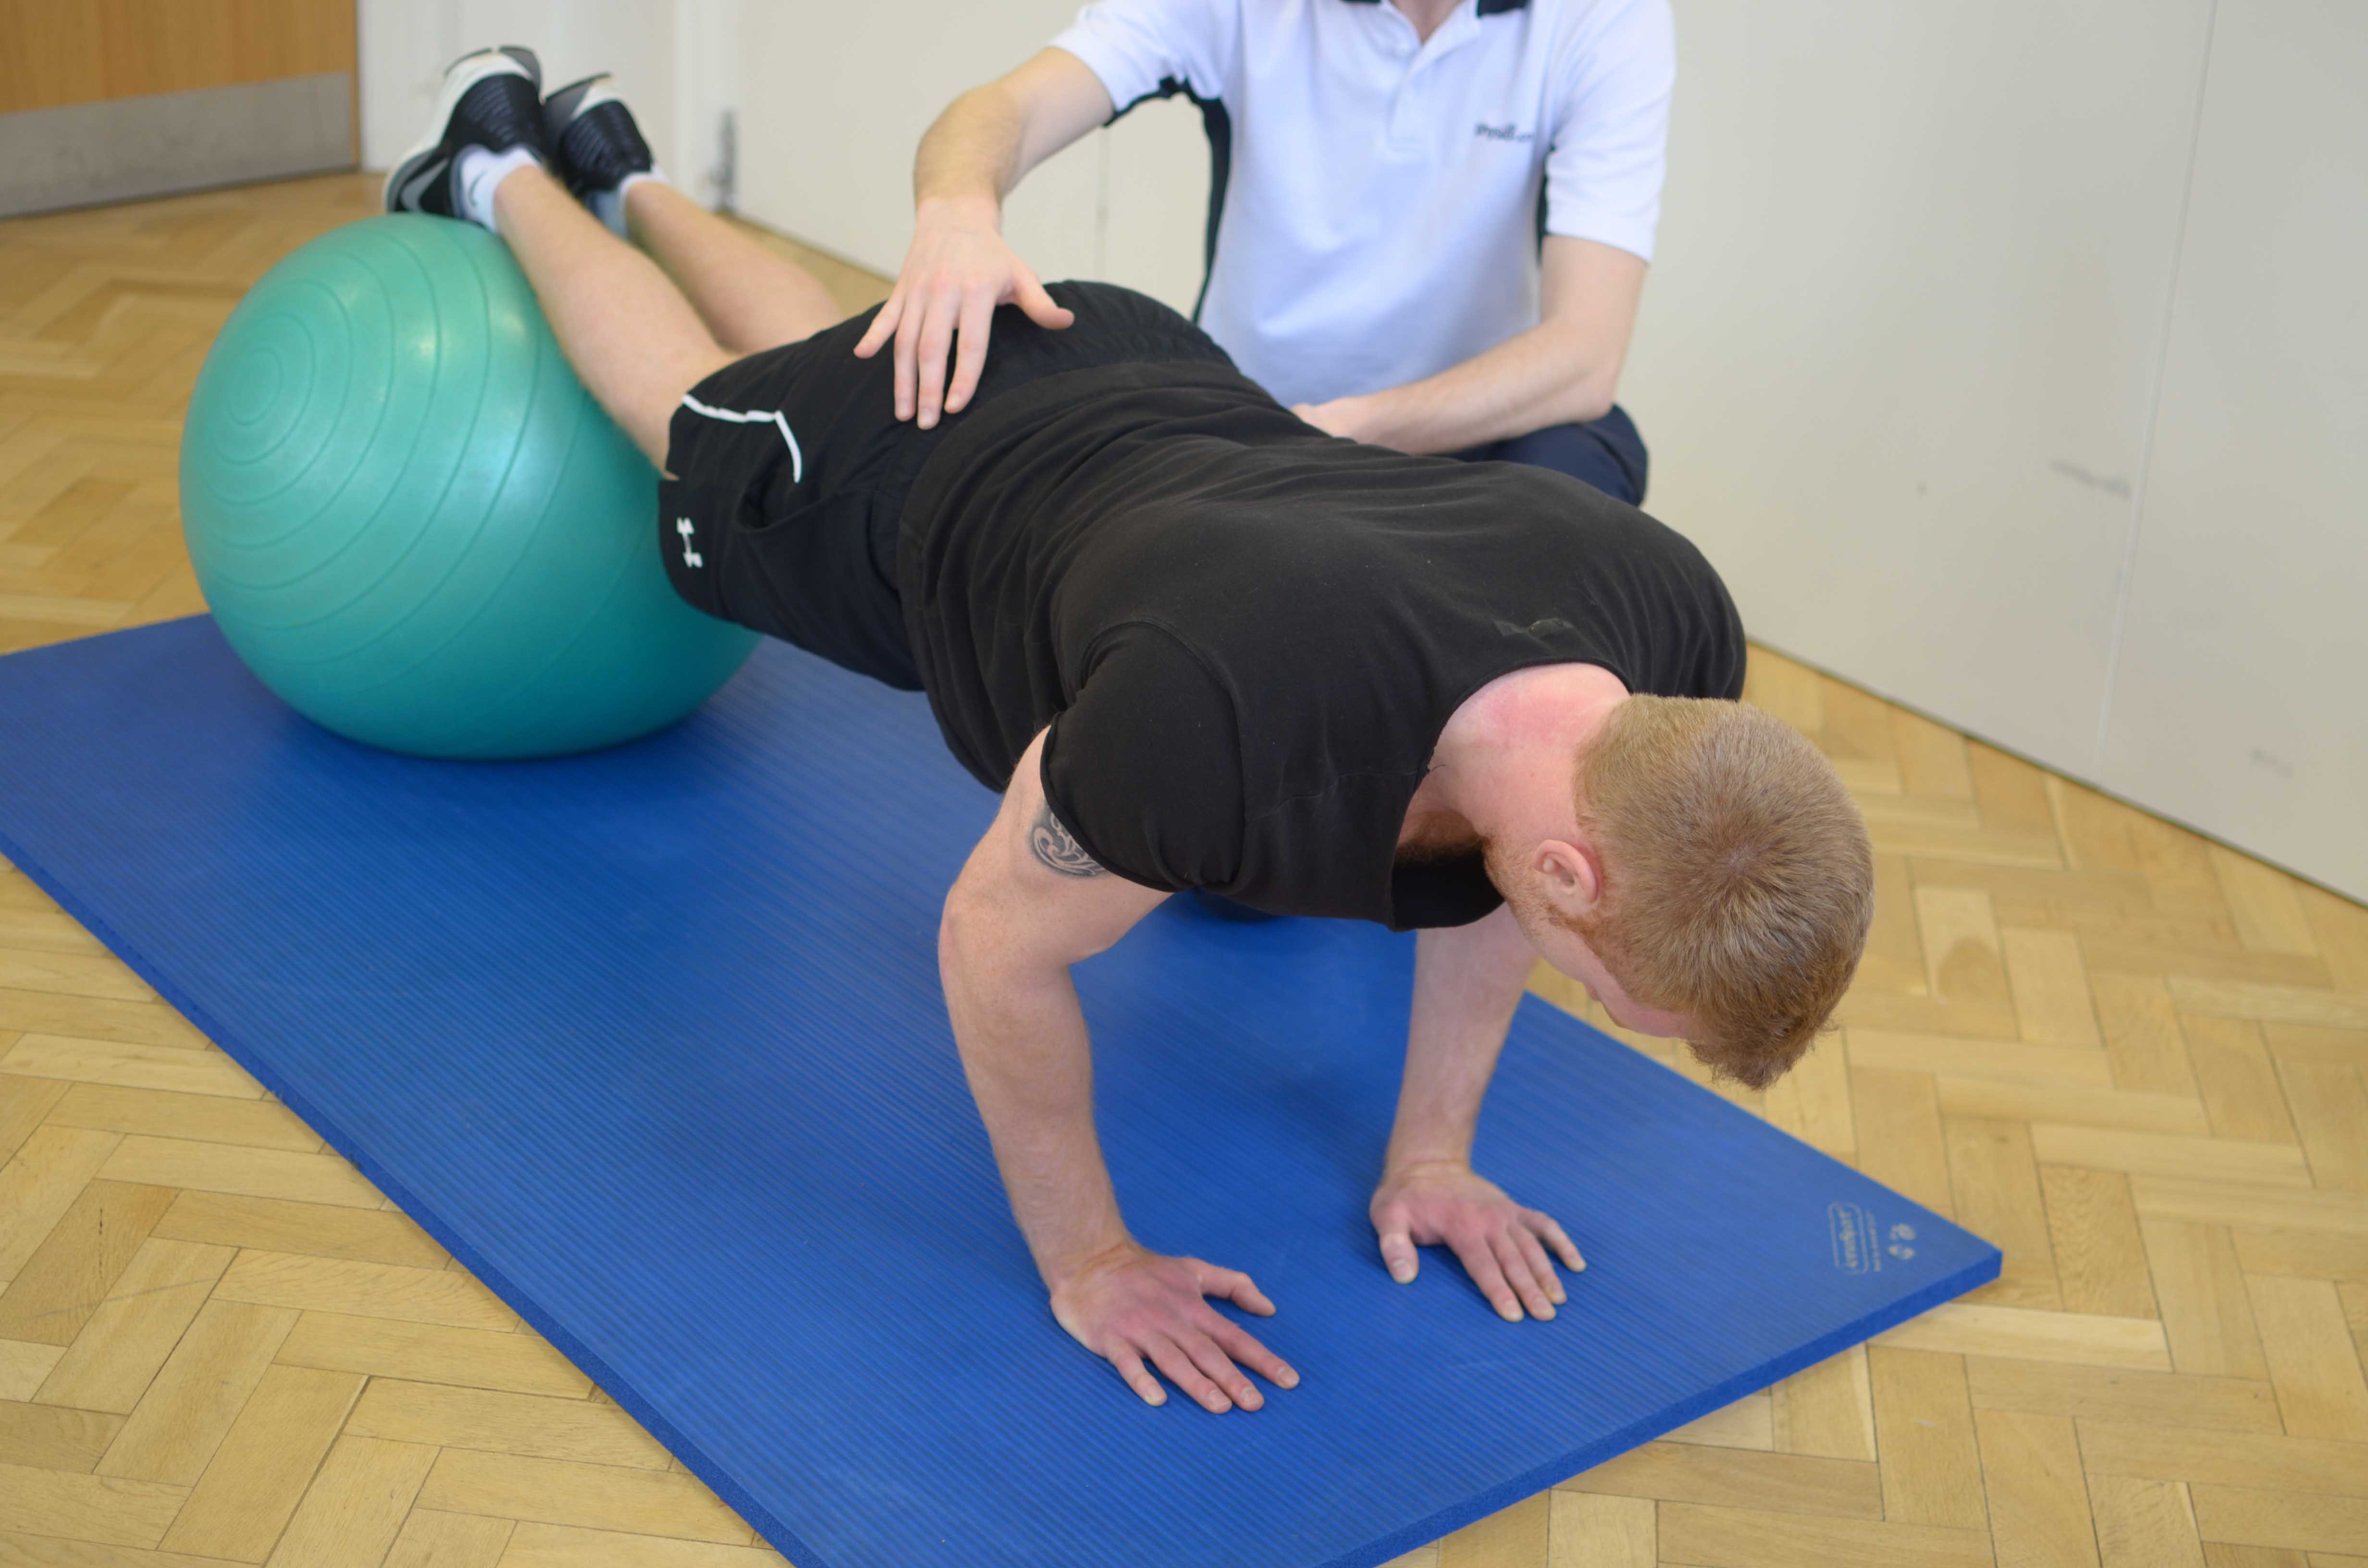 Rehabilitation following lower back vertebral fusion